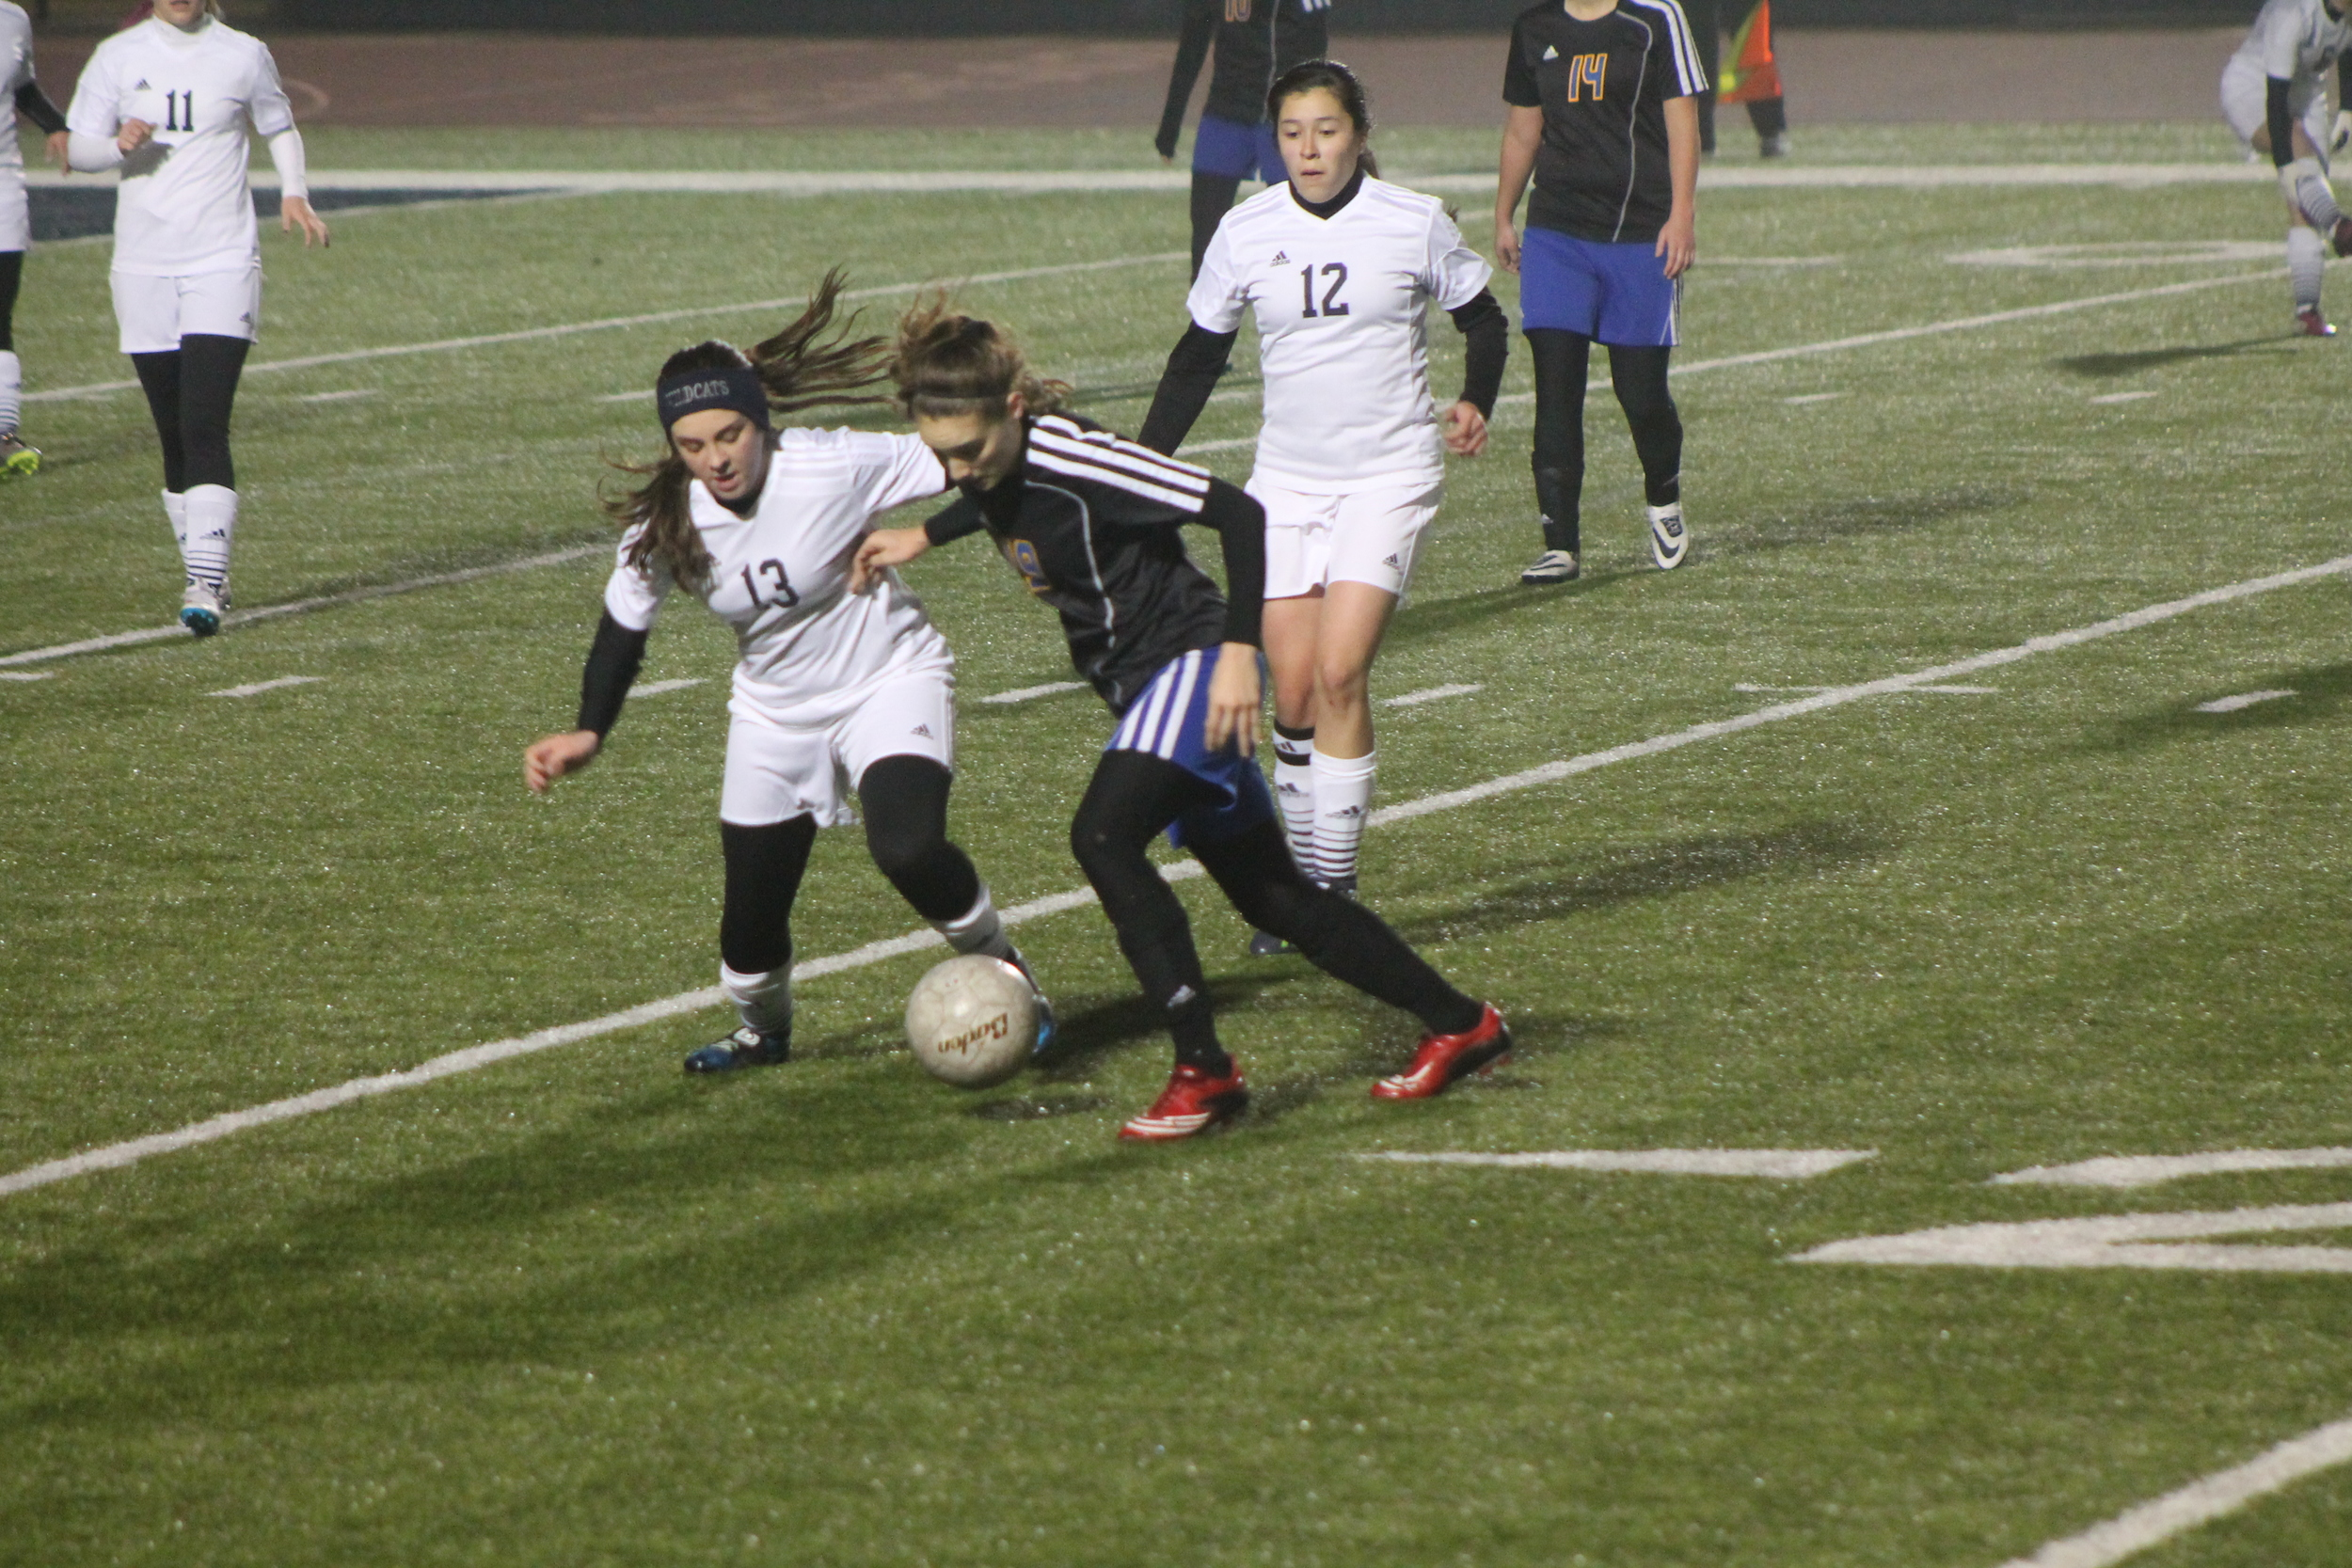 (Photo by Adam Routon) Madison Morrison contesting for the ball against Paris High